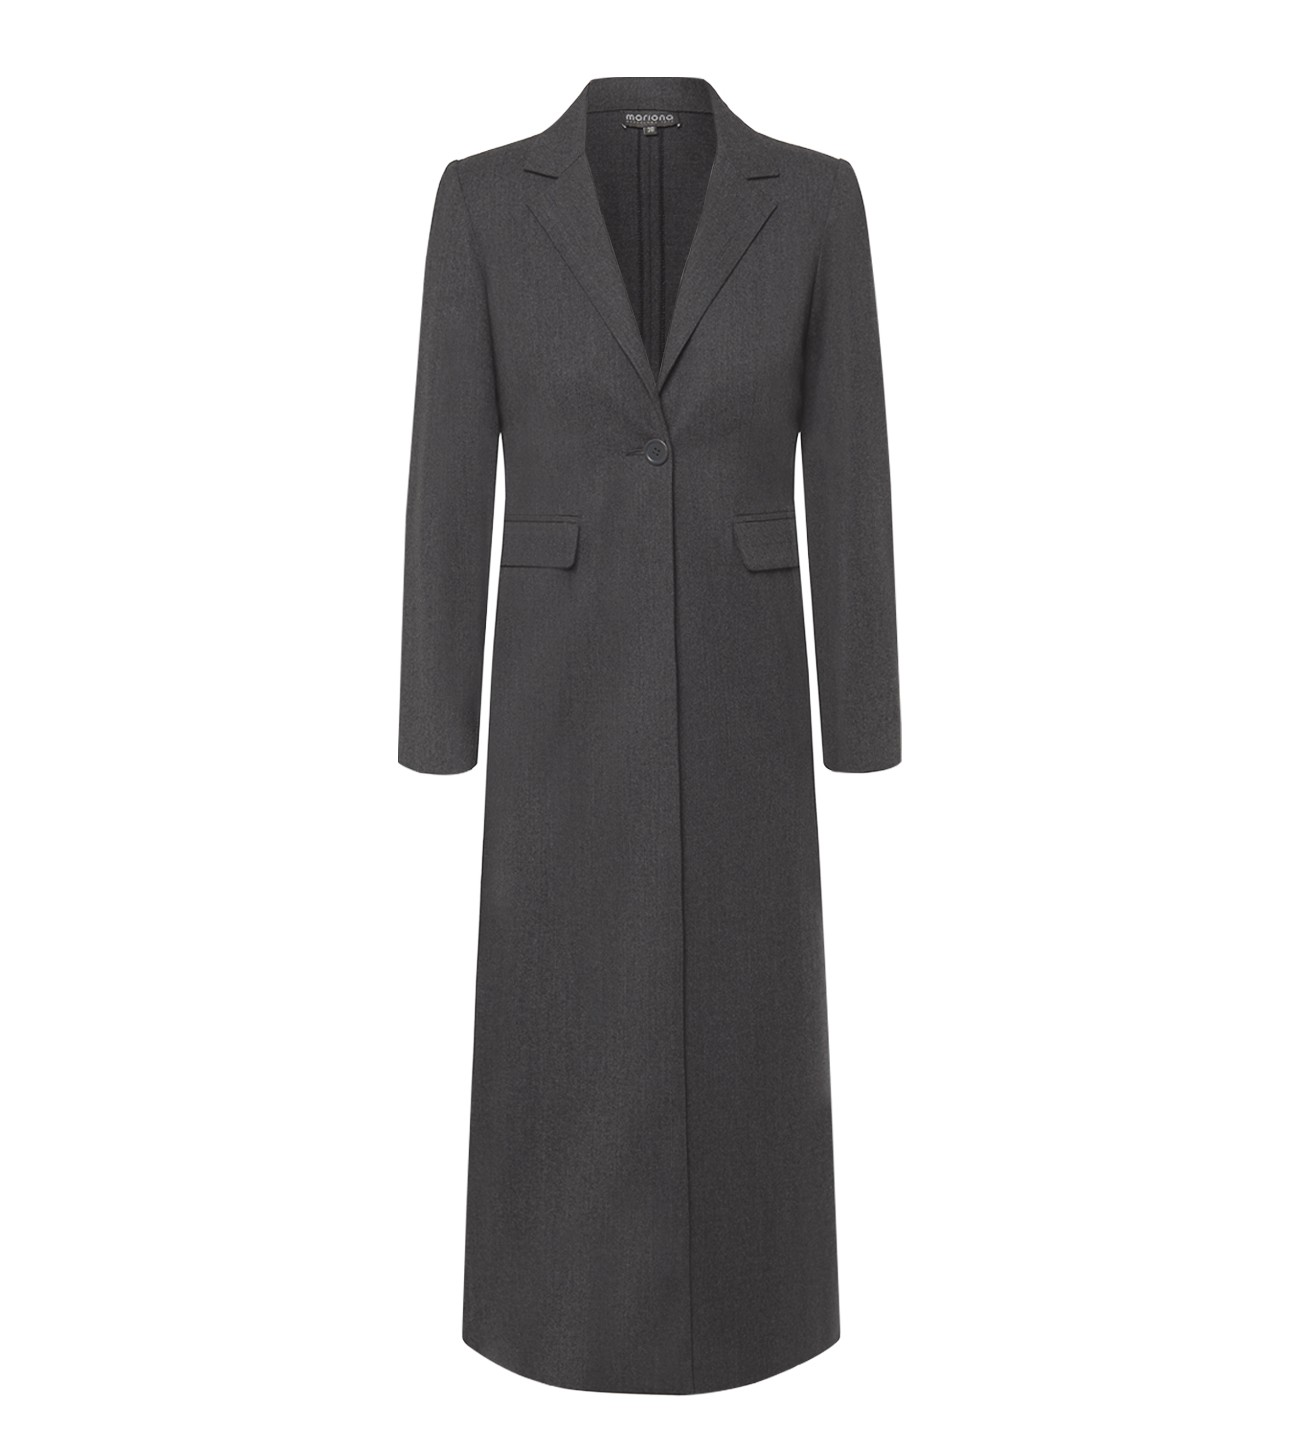 MARIONA_LONG_FITTED_COAT_MARIONA_FASHION_CLOTHING_WOMAN_SHOP_ONLINE_2609